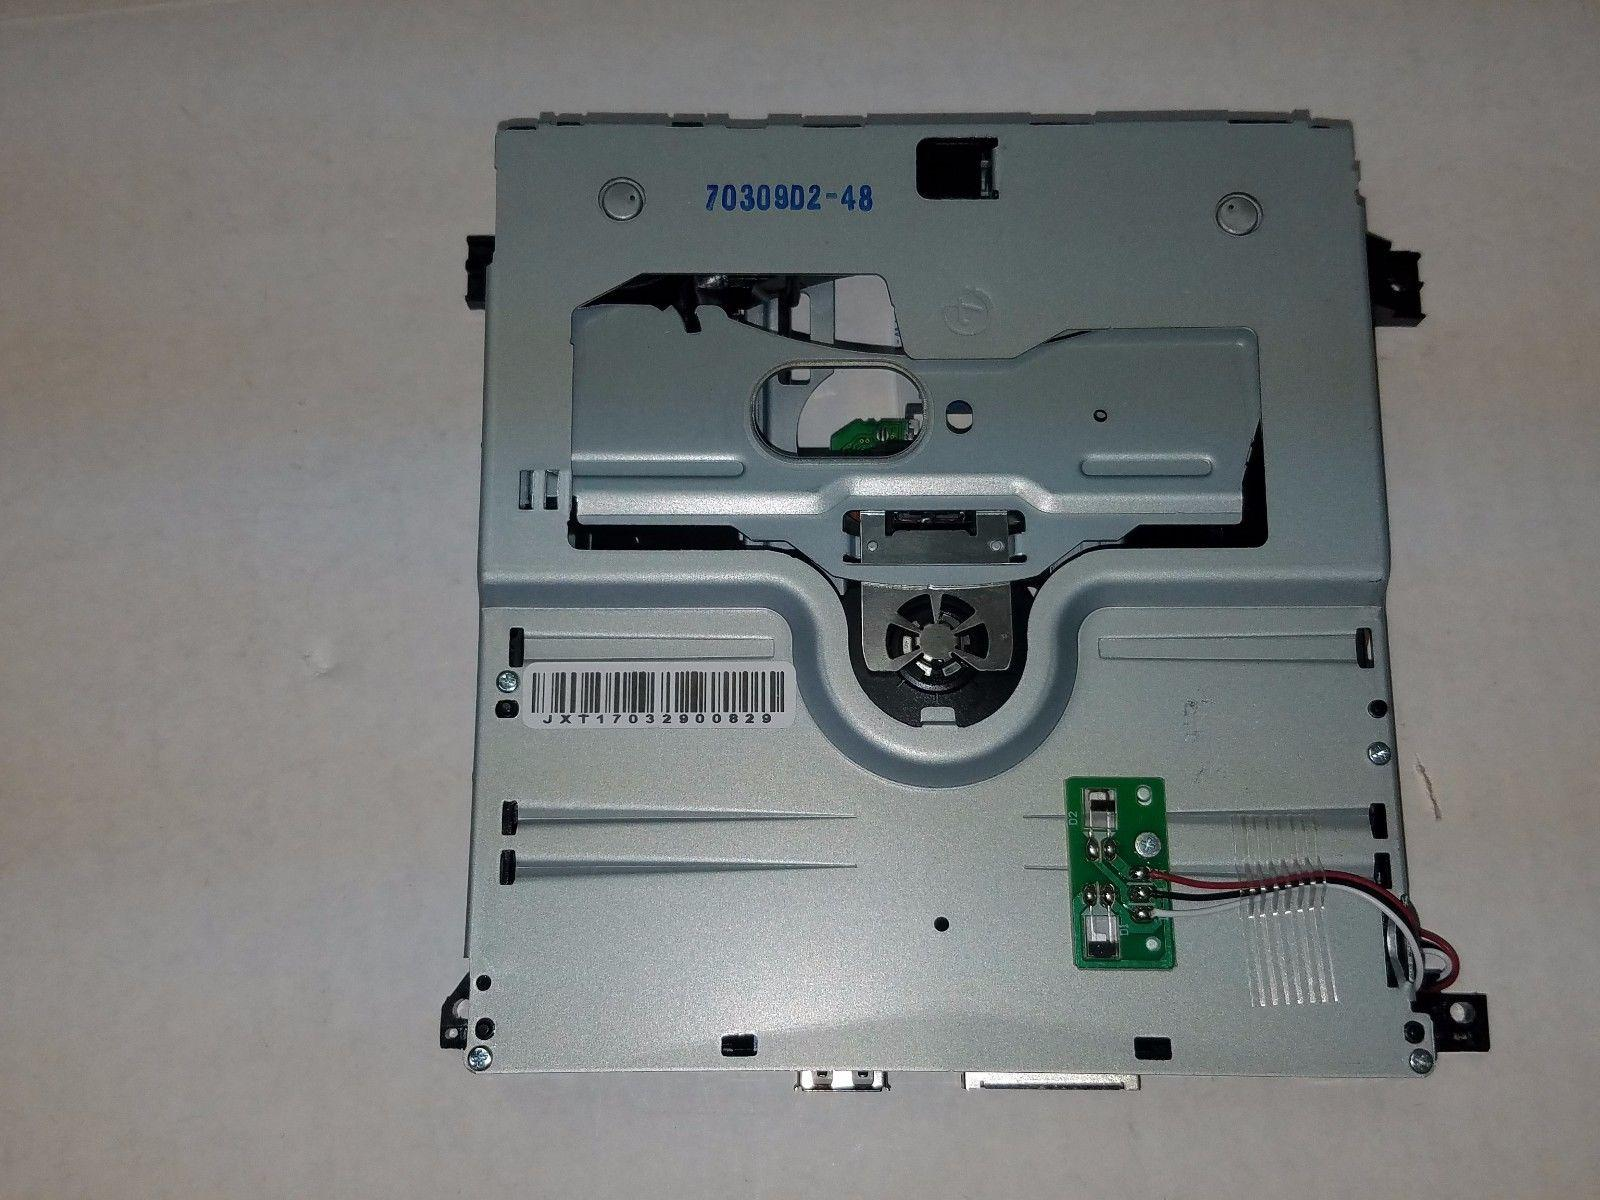 GPX TDE1587B DVD Player 70309D2-48